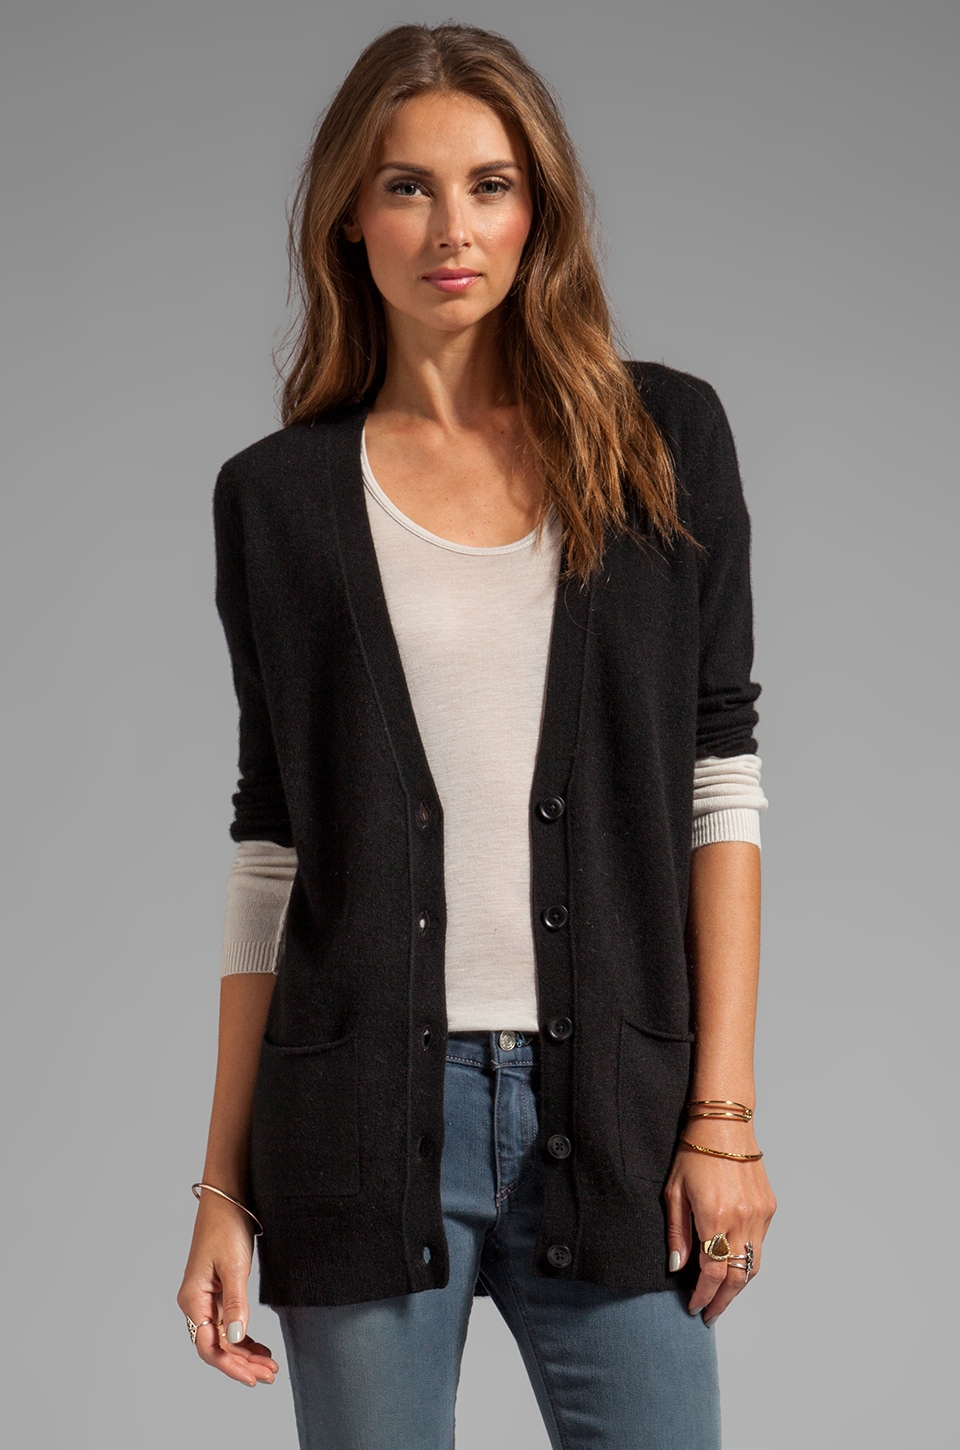 360 Sweater Shana Cashmere Cardigan in Black/Chalk